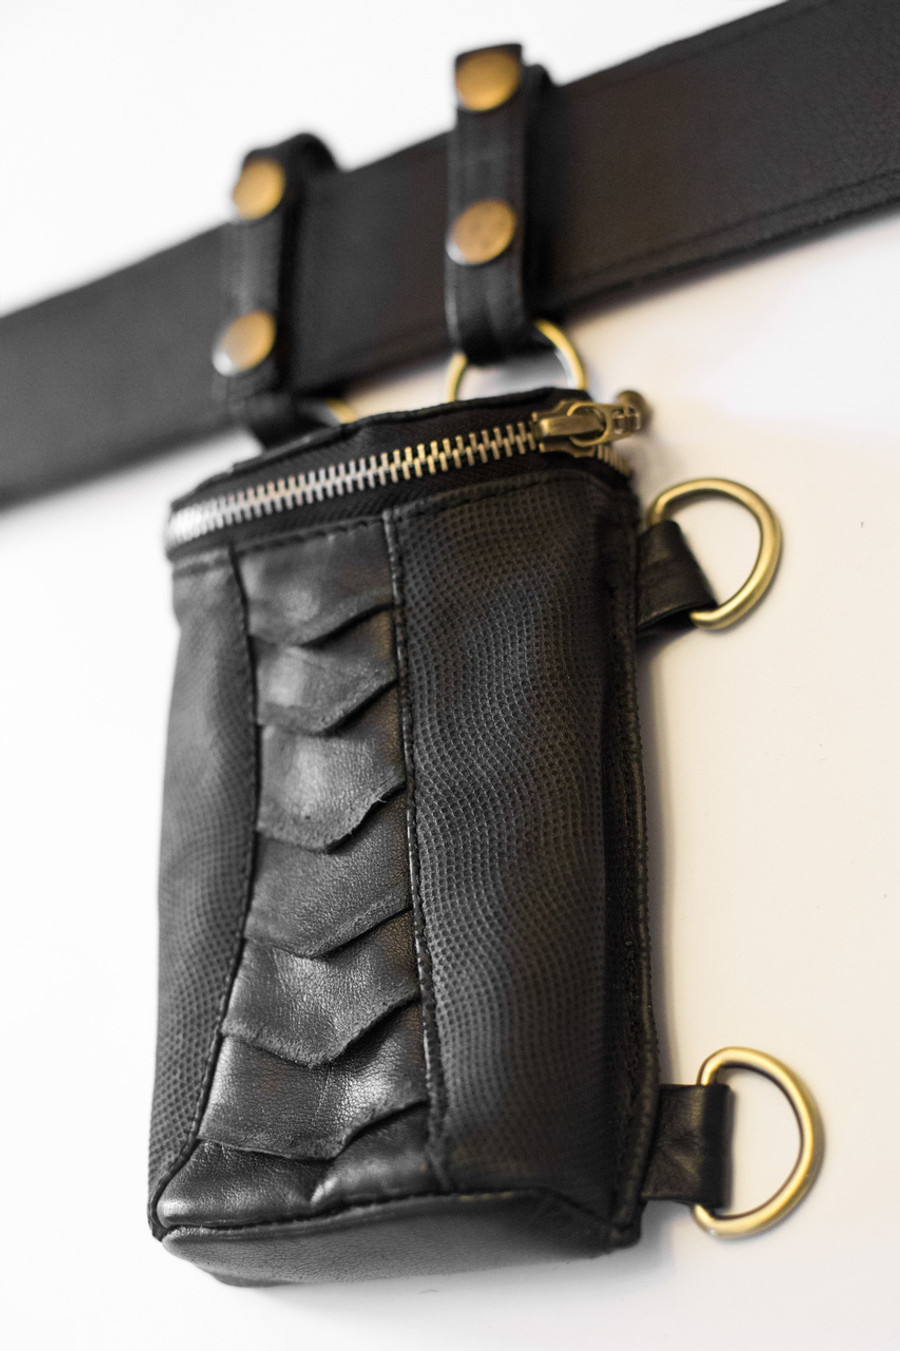 Can also be attached to belts